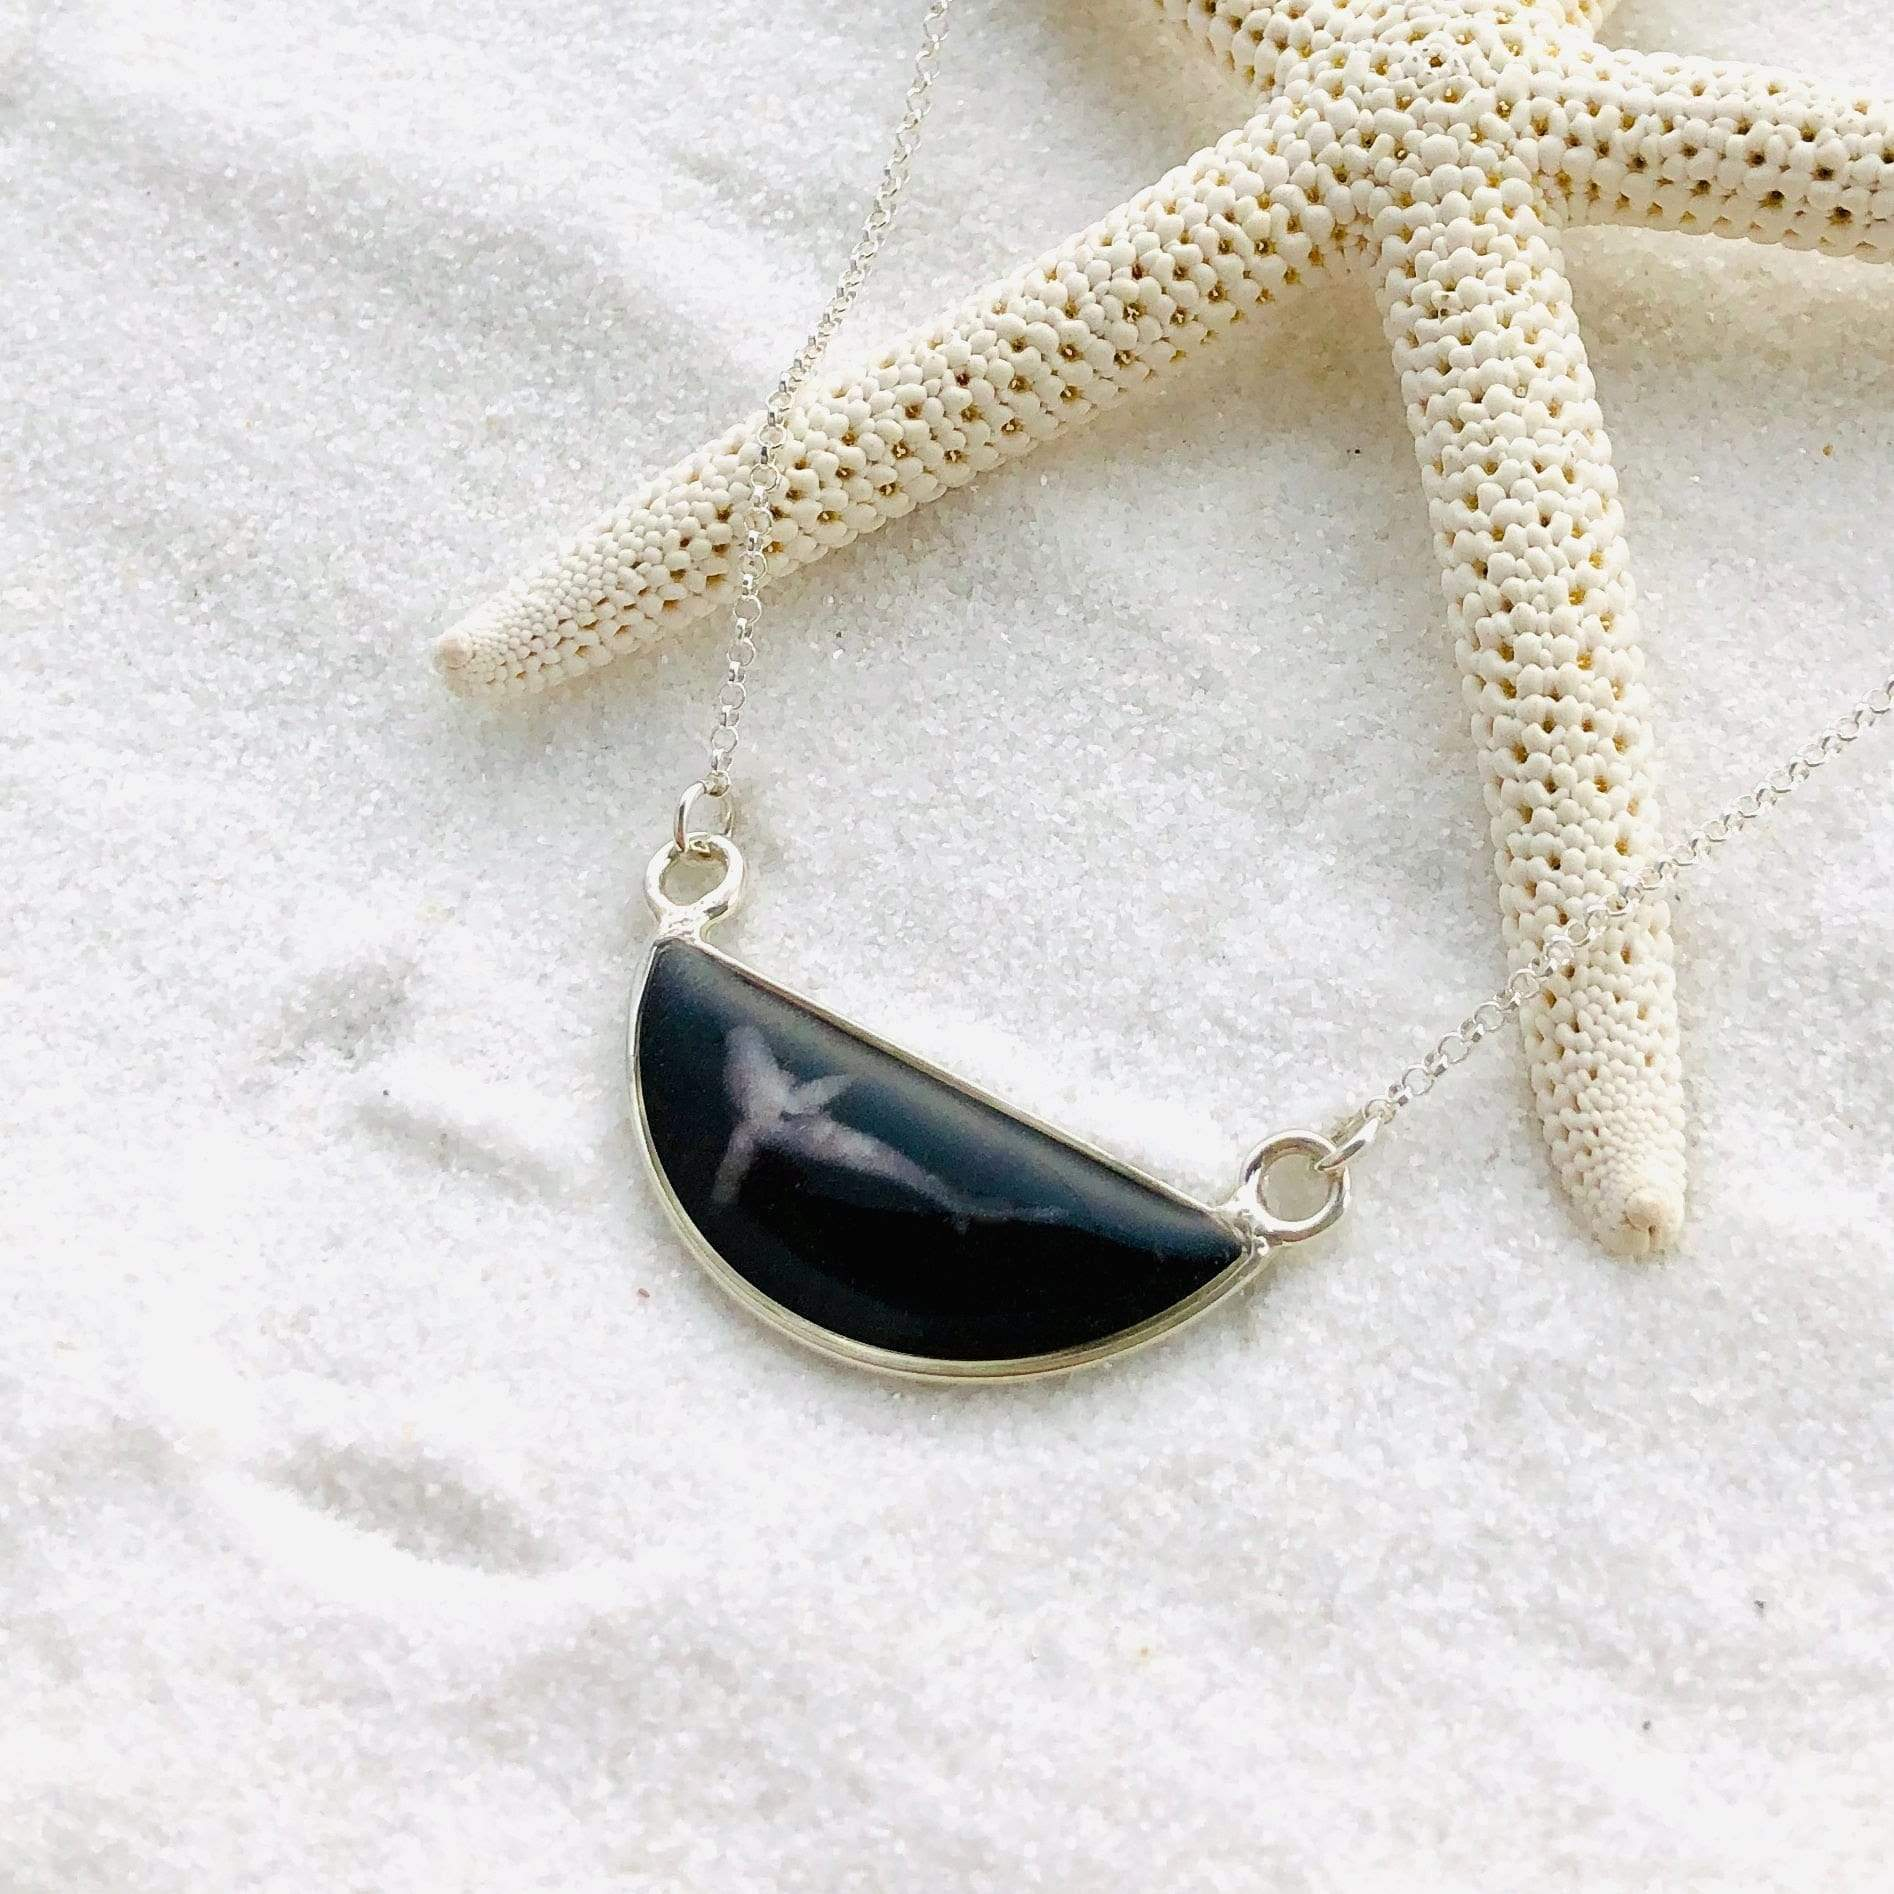 Black Shark Necklace